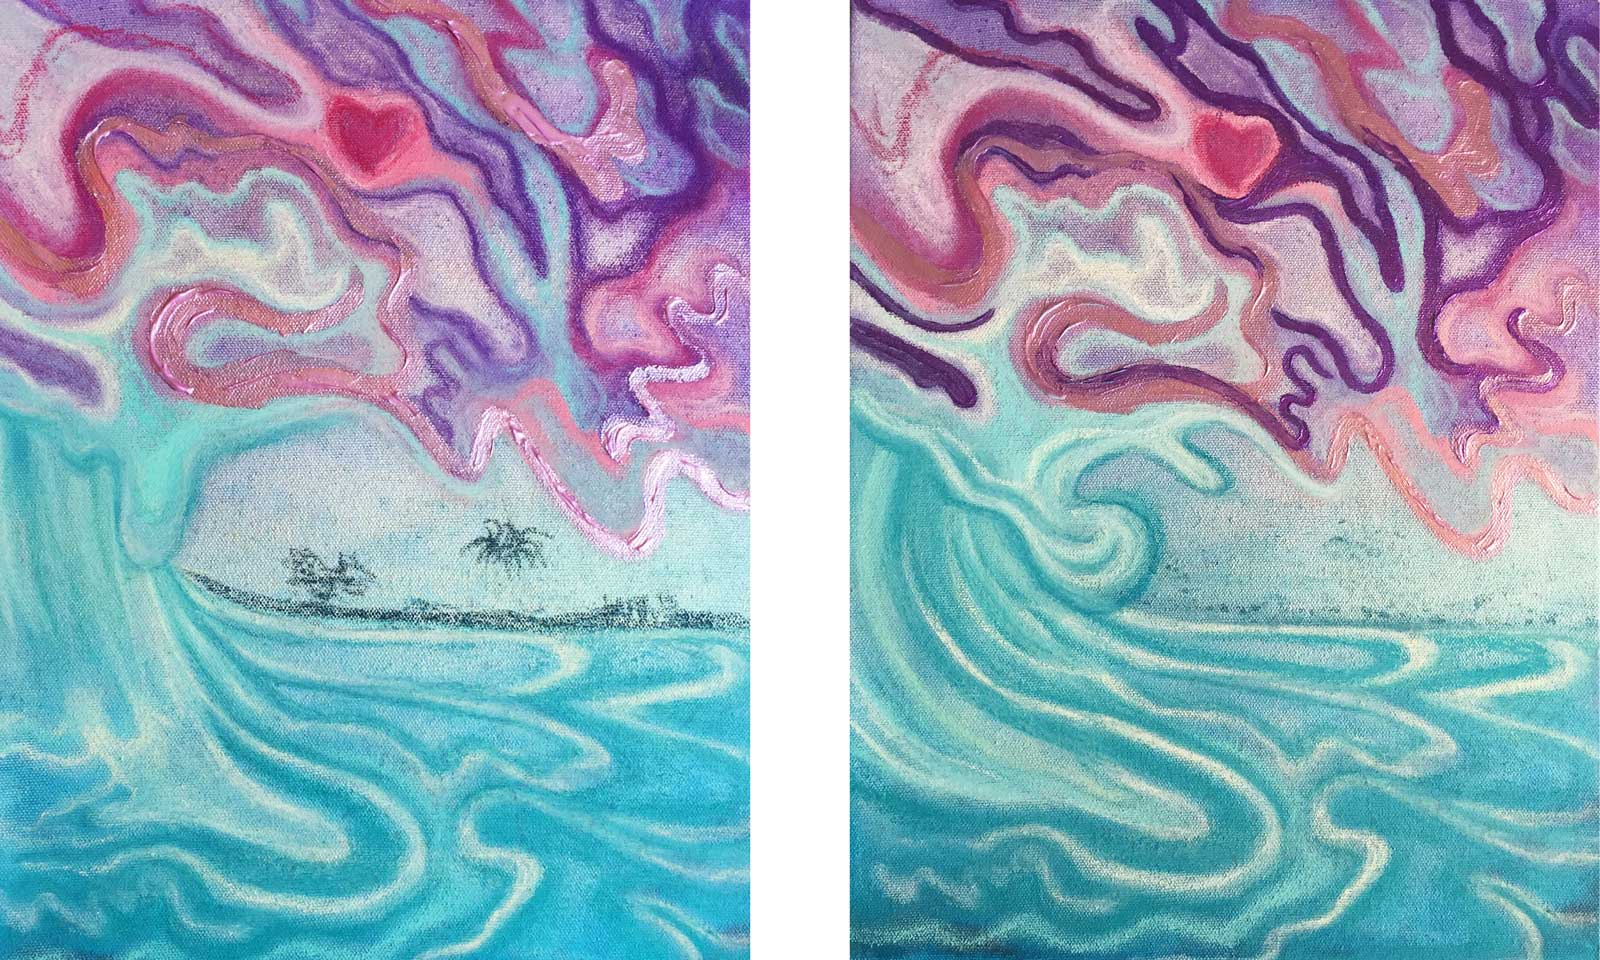 Shown here are two different photos of the same painting, before and after fixing the curve of the wave's wall.